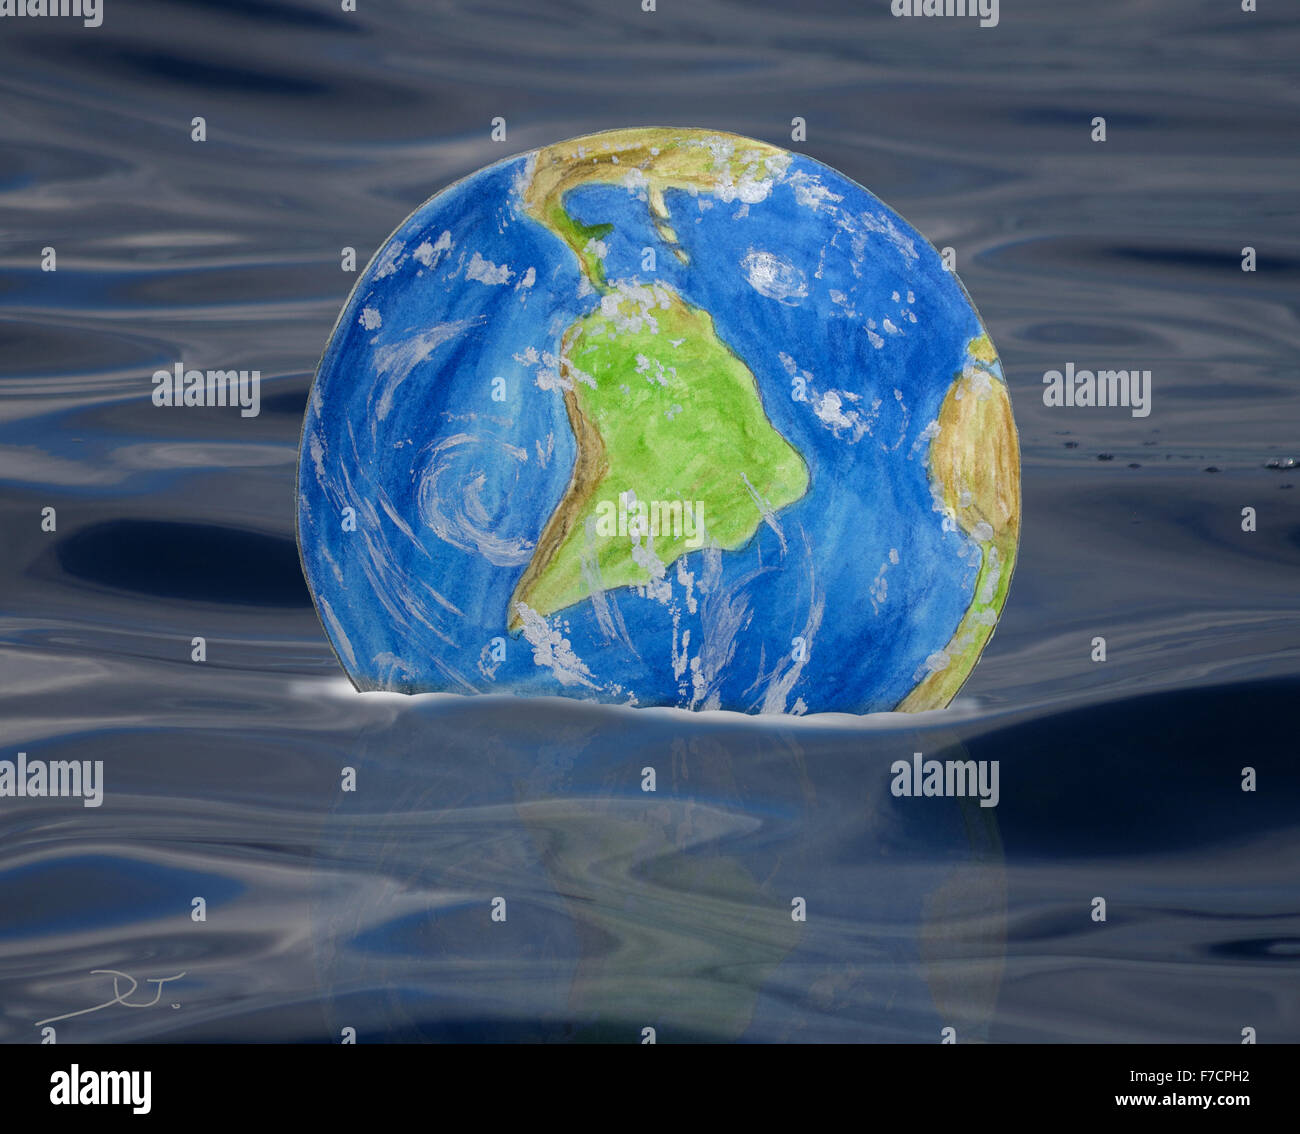 Earth is drowning - Stock Image